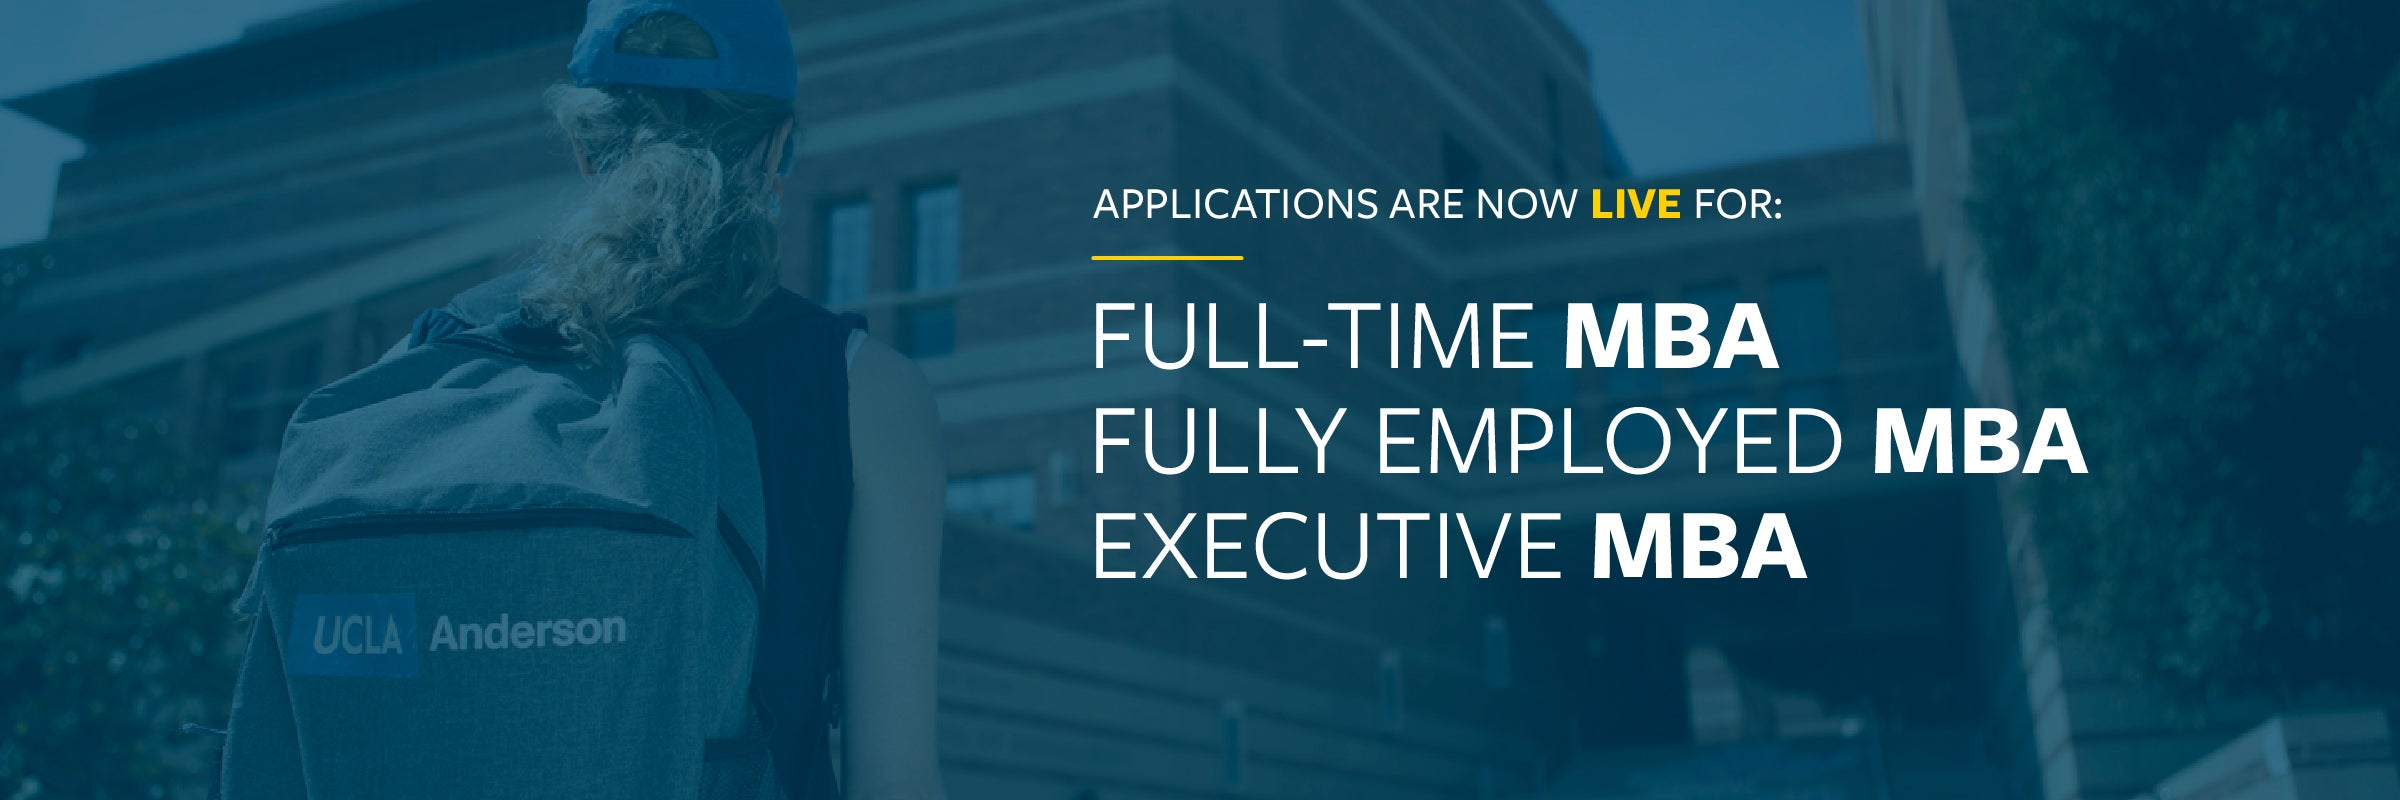 Applications are now LIVE for Full-Time MBA, Fully Employed MBA and Executive MBA Programs